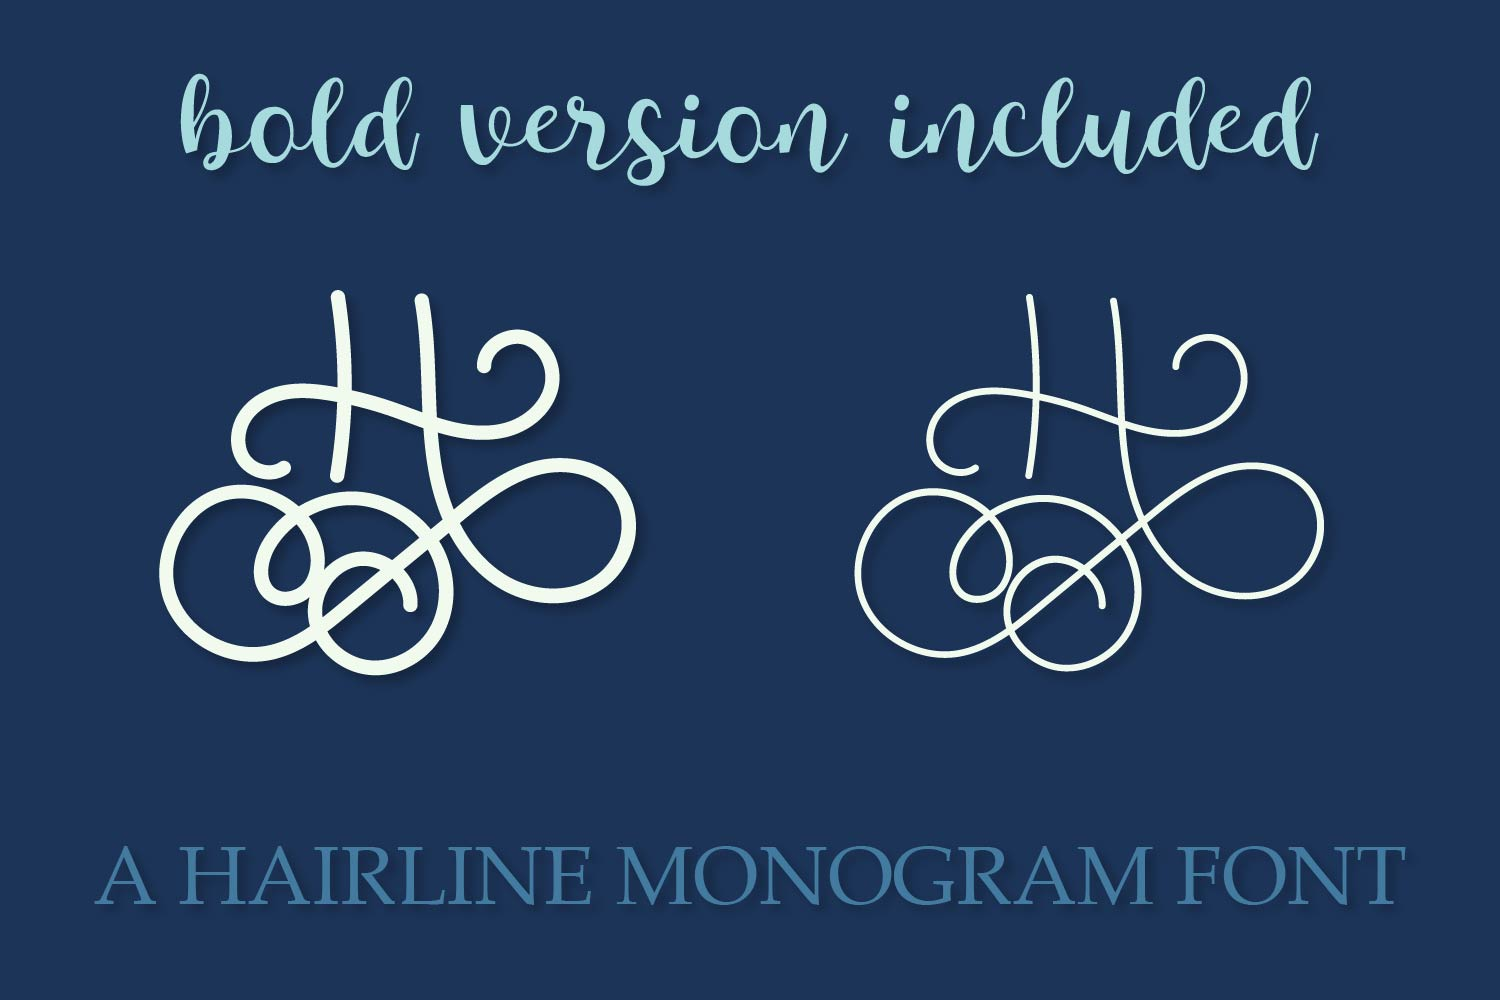 Hairline Monogram Font - Bold Version Included example image 2